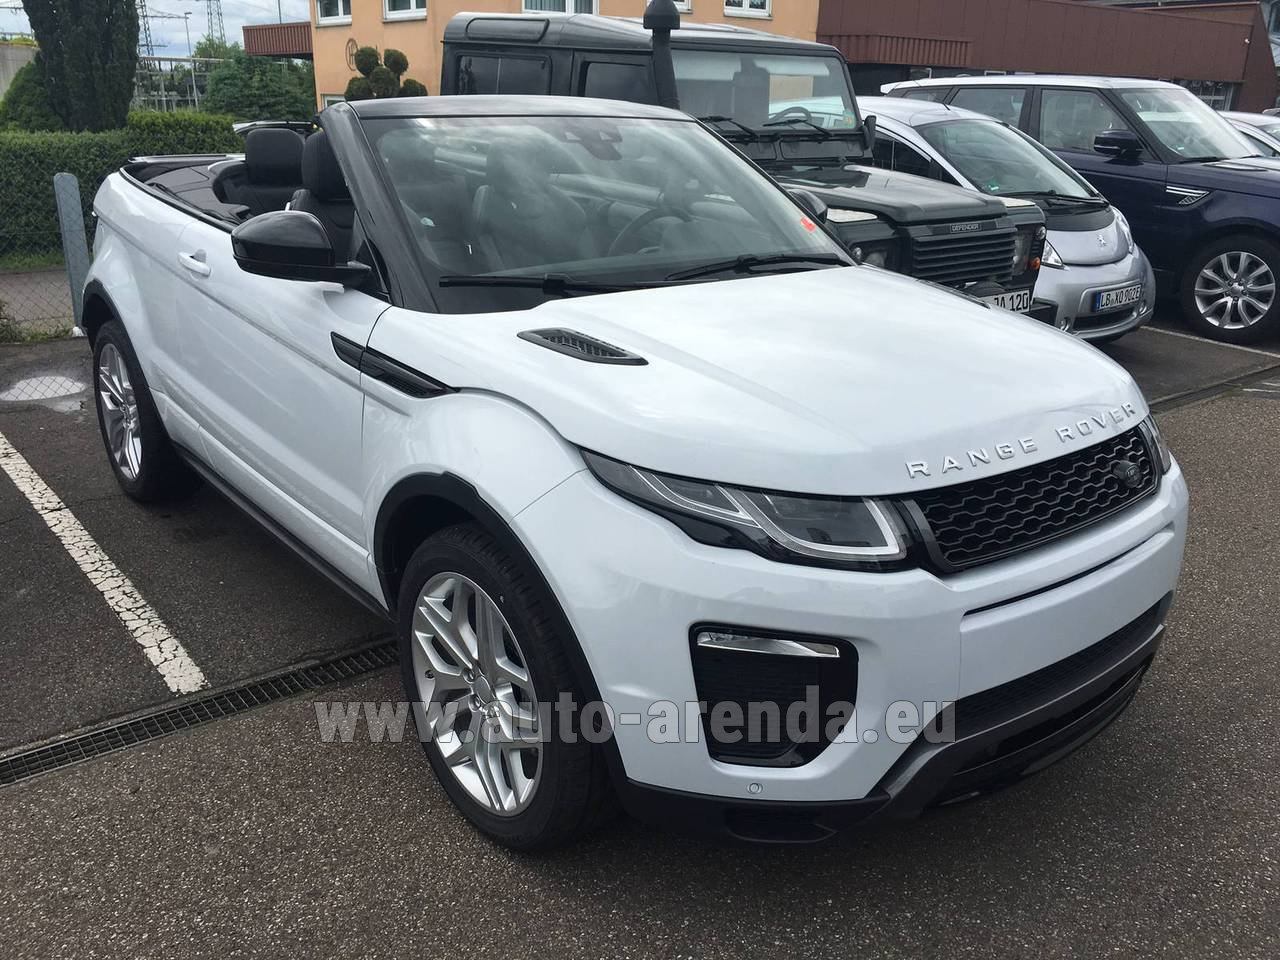 rent land rover range rover evoque hse cabrio sd4 aut dynamic in luxembourg city. Black Bedroom Furniture Sets. Home Design Ideas